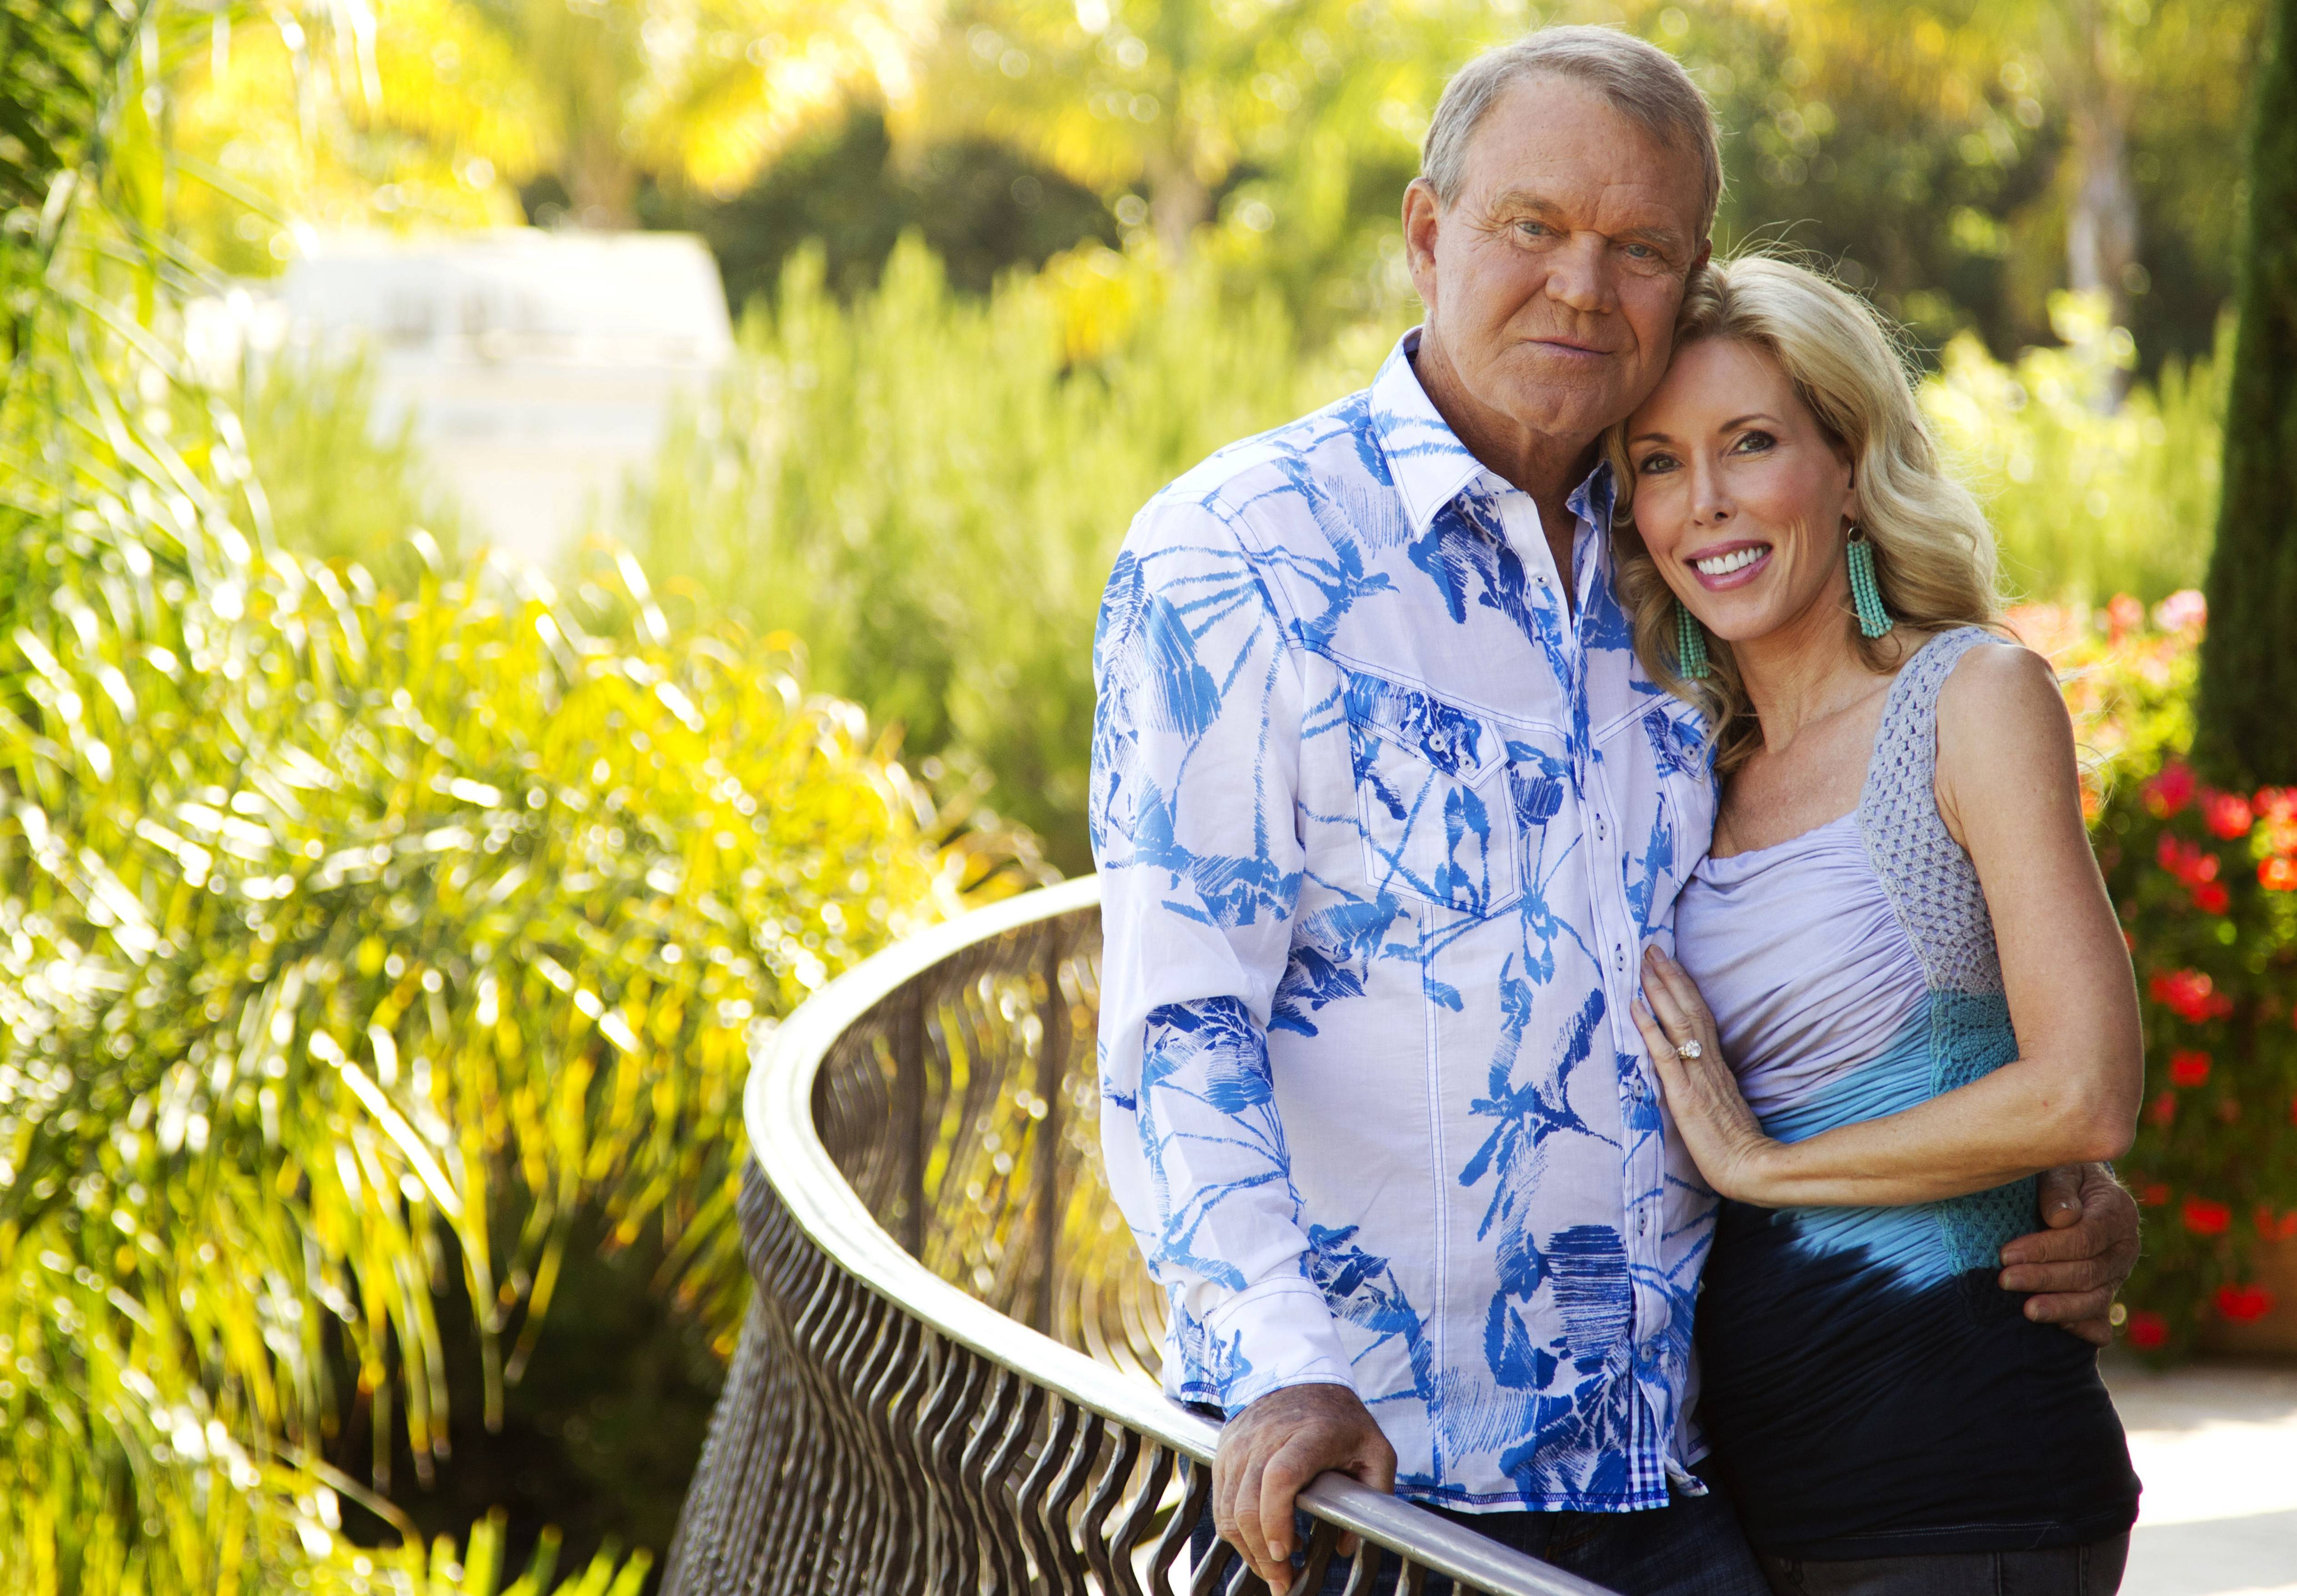 Glen Campbell's wife, Kim, has issued a statement explaining the decision to place the singer in a long-term care facility and expressing hurt over criticism of the move. Kim Campbell says Thursday, June 19, 2014, in an email to The Associated Press that the 78-year-old's Alzheimer's disease has progressed to the point that he needed access to medical care 24 hours a day.